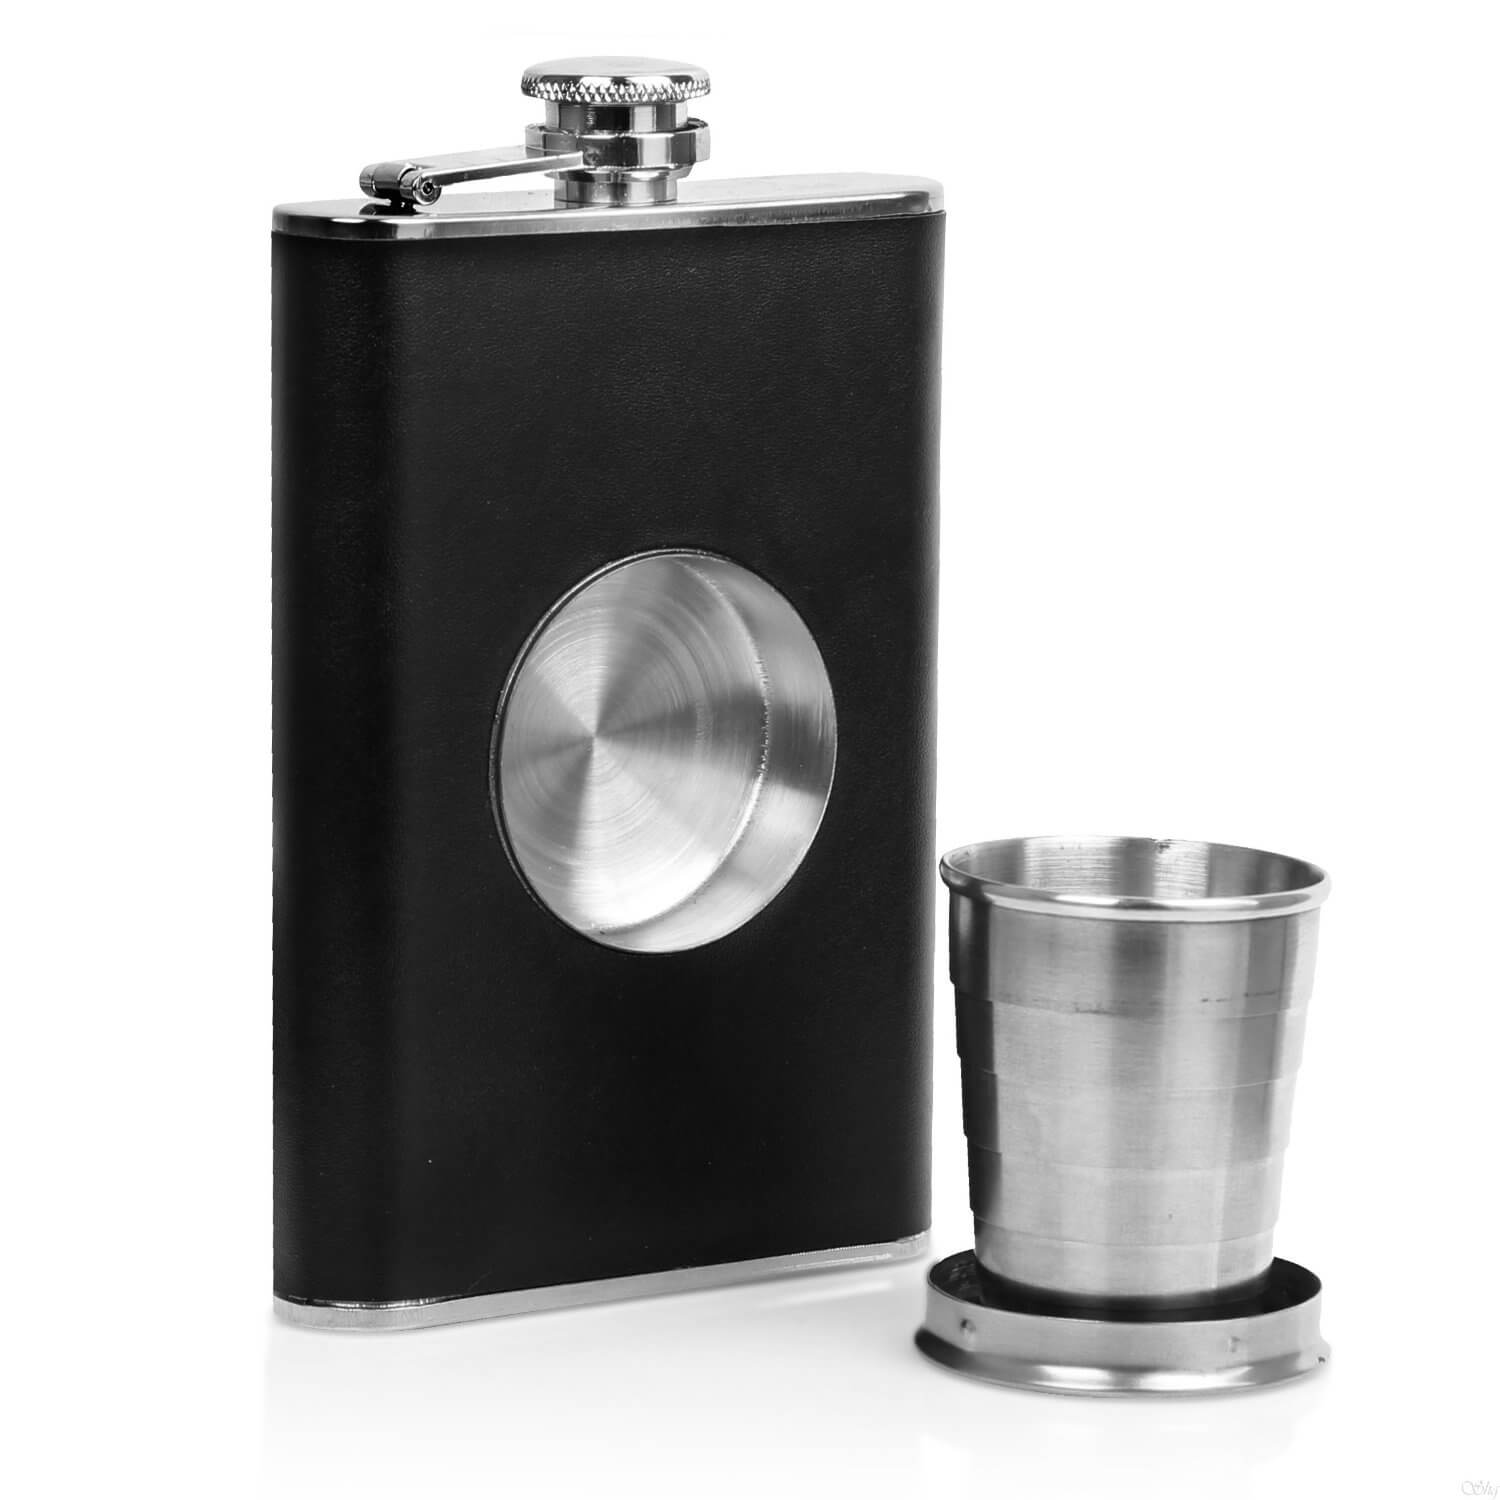 Ivation Stainless Steel & Genuine Leather Shot Flask 8oz. Hip Flask with Collapsible 2oz. Shot Glass